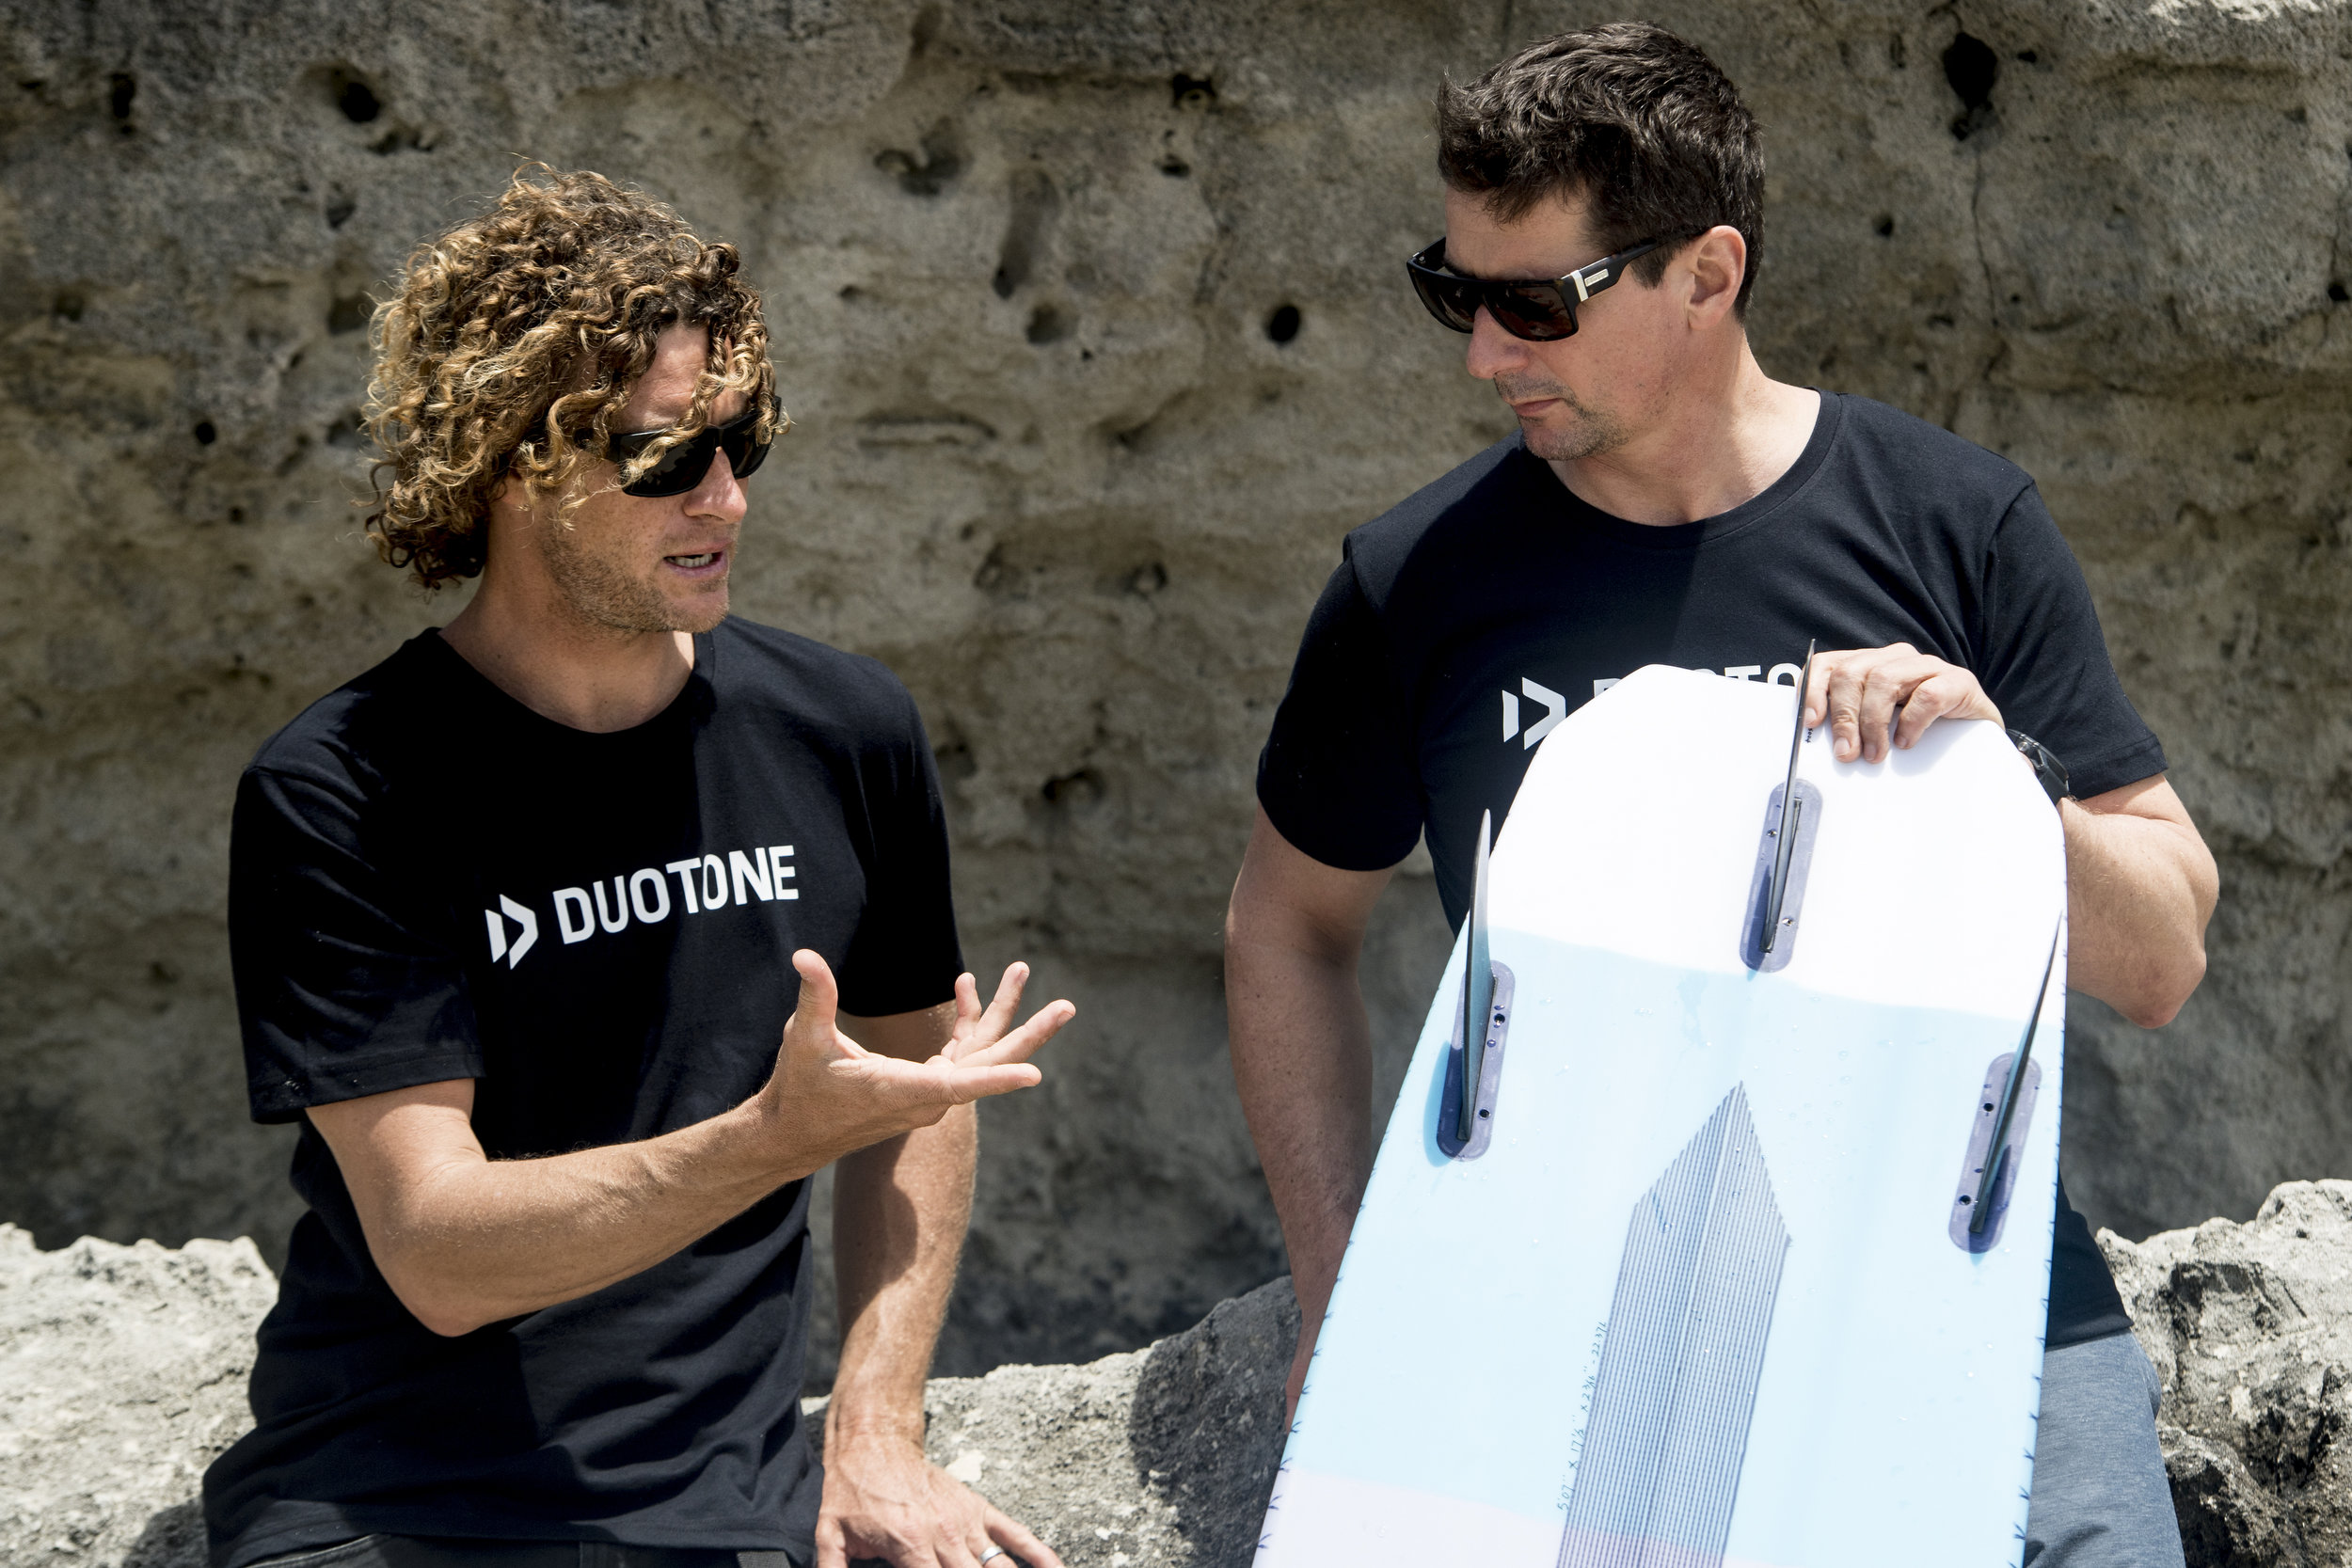 Sky Solbach expert surfboard designer chats with Till Eberle